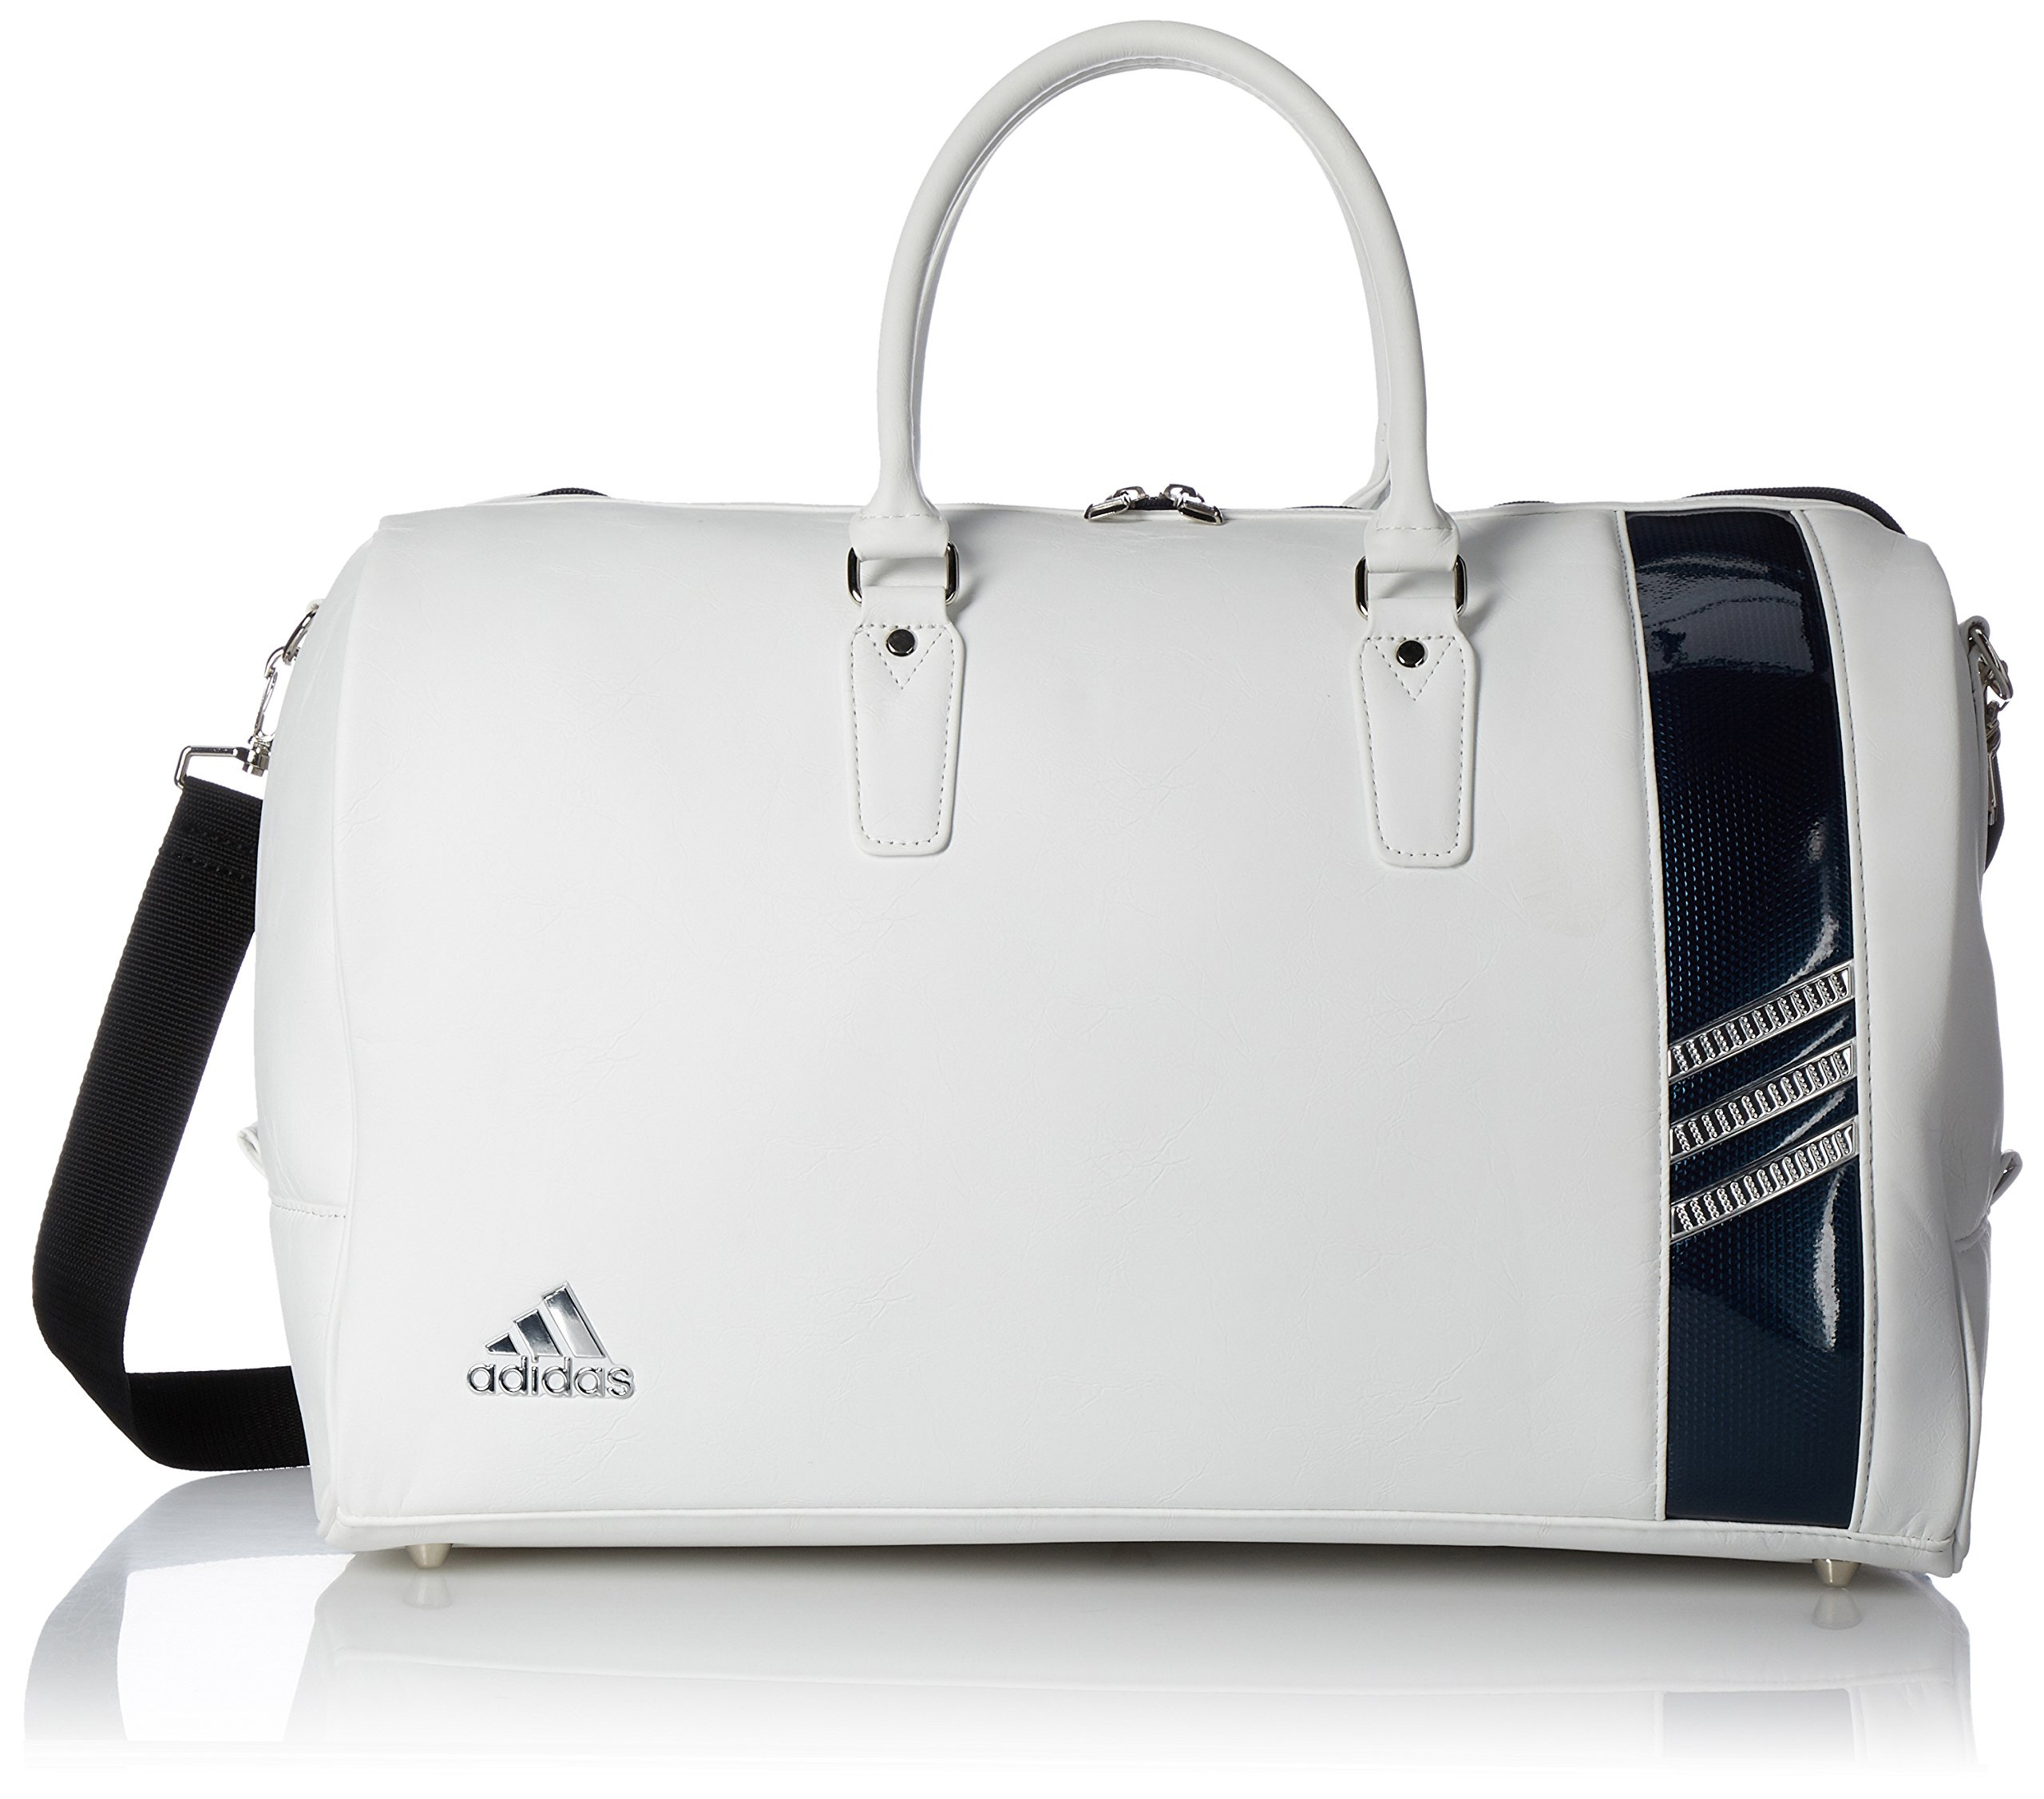 [Adidas Golf] Boston bag L50 × W24 × H 31 cm / with shoes in pocket / AWT 82 A92343 white / navy